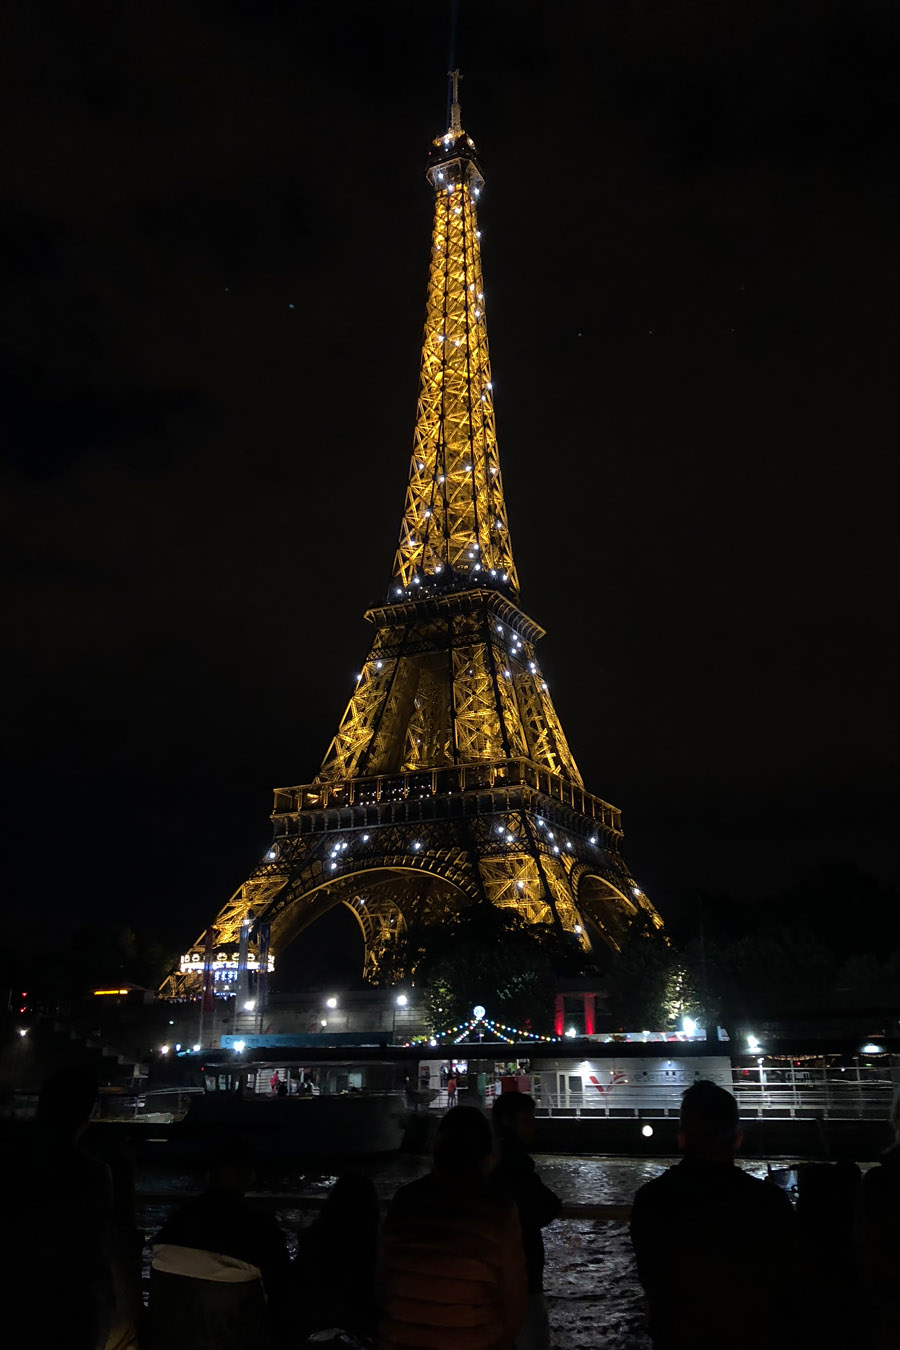 Best Paris boat tour tips for sightseeing cruise on the Seine River in Paris, France. Eiffel tower at night sparkling